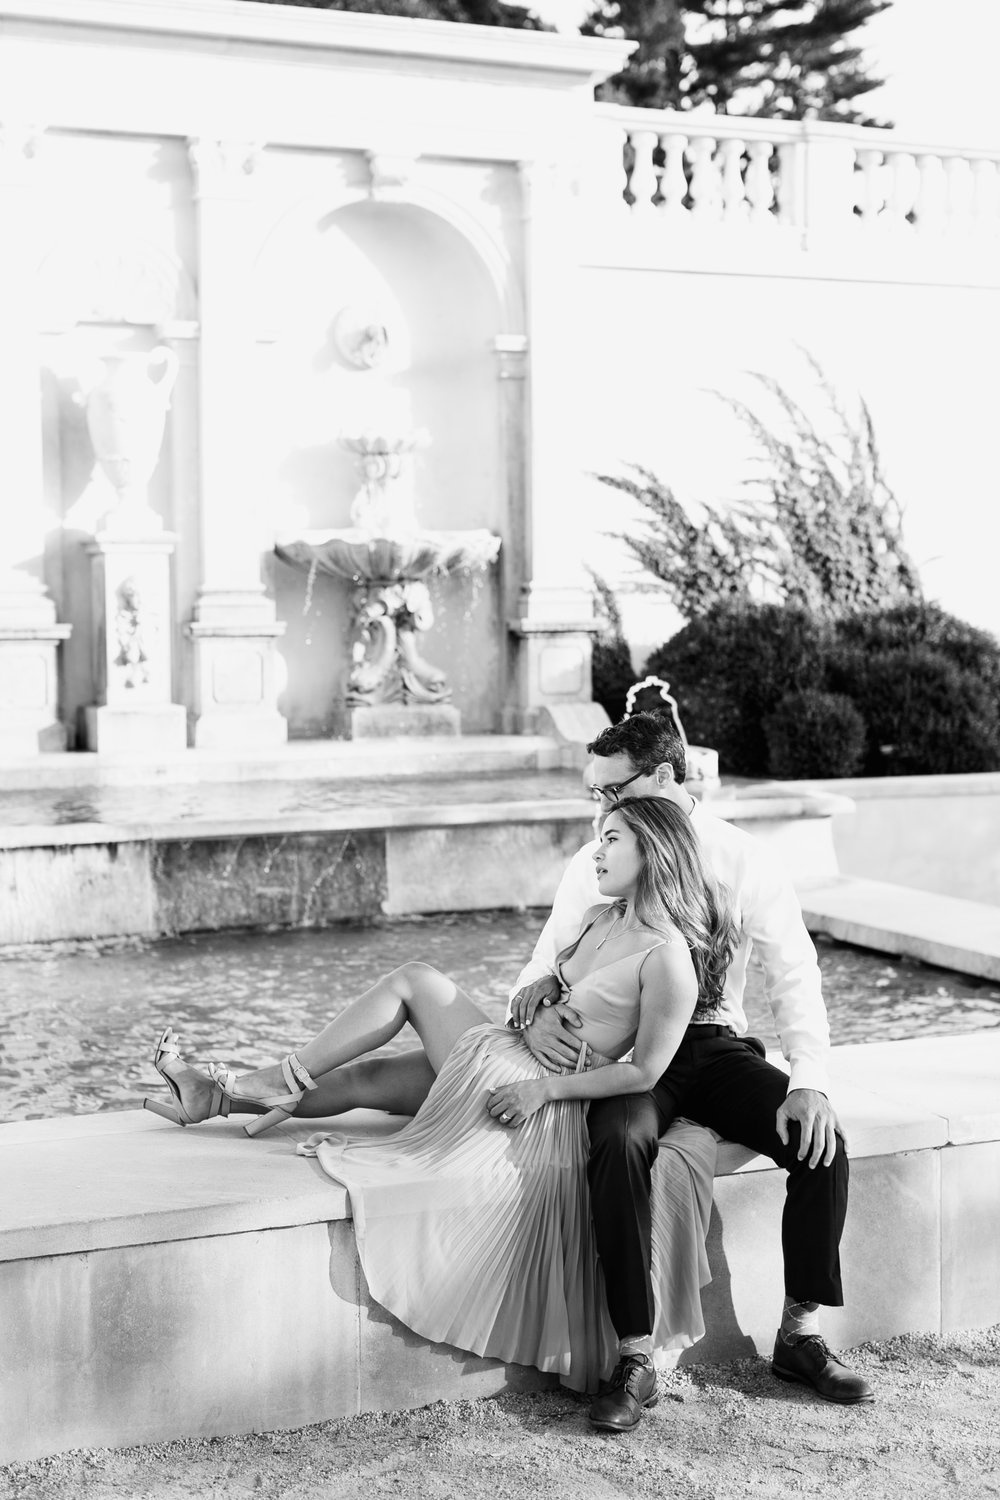 photography-natural-candid-engaged-proposal-philadelphia-wedding-longwood gardends-nature-flowers-modern-lifestyle-20.JPG